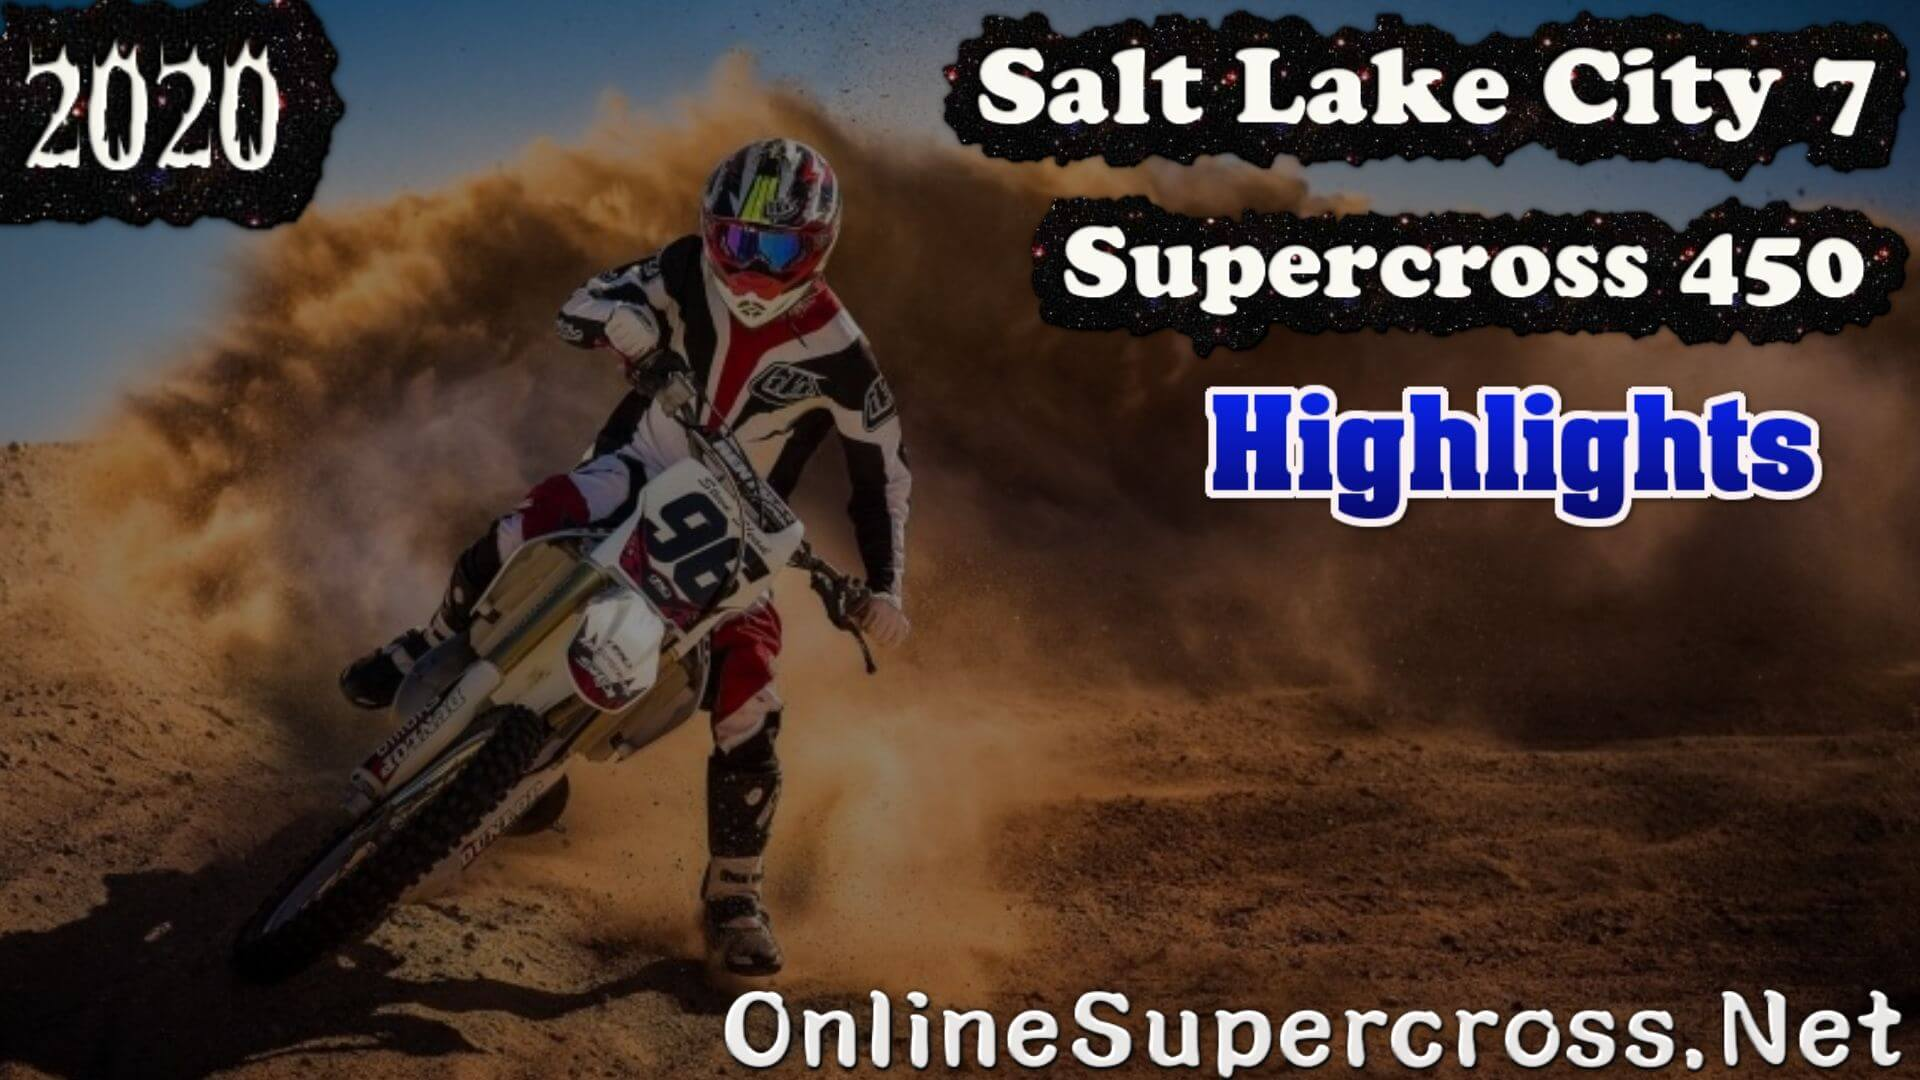 Salt Lake City 7 Supercross 450 Highlights 2020